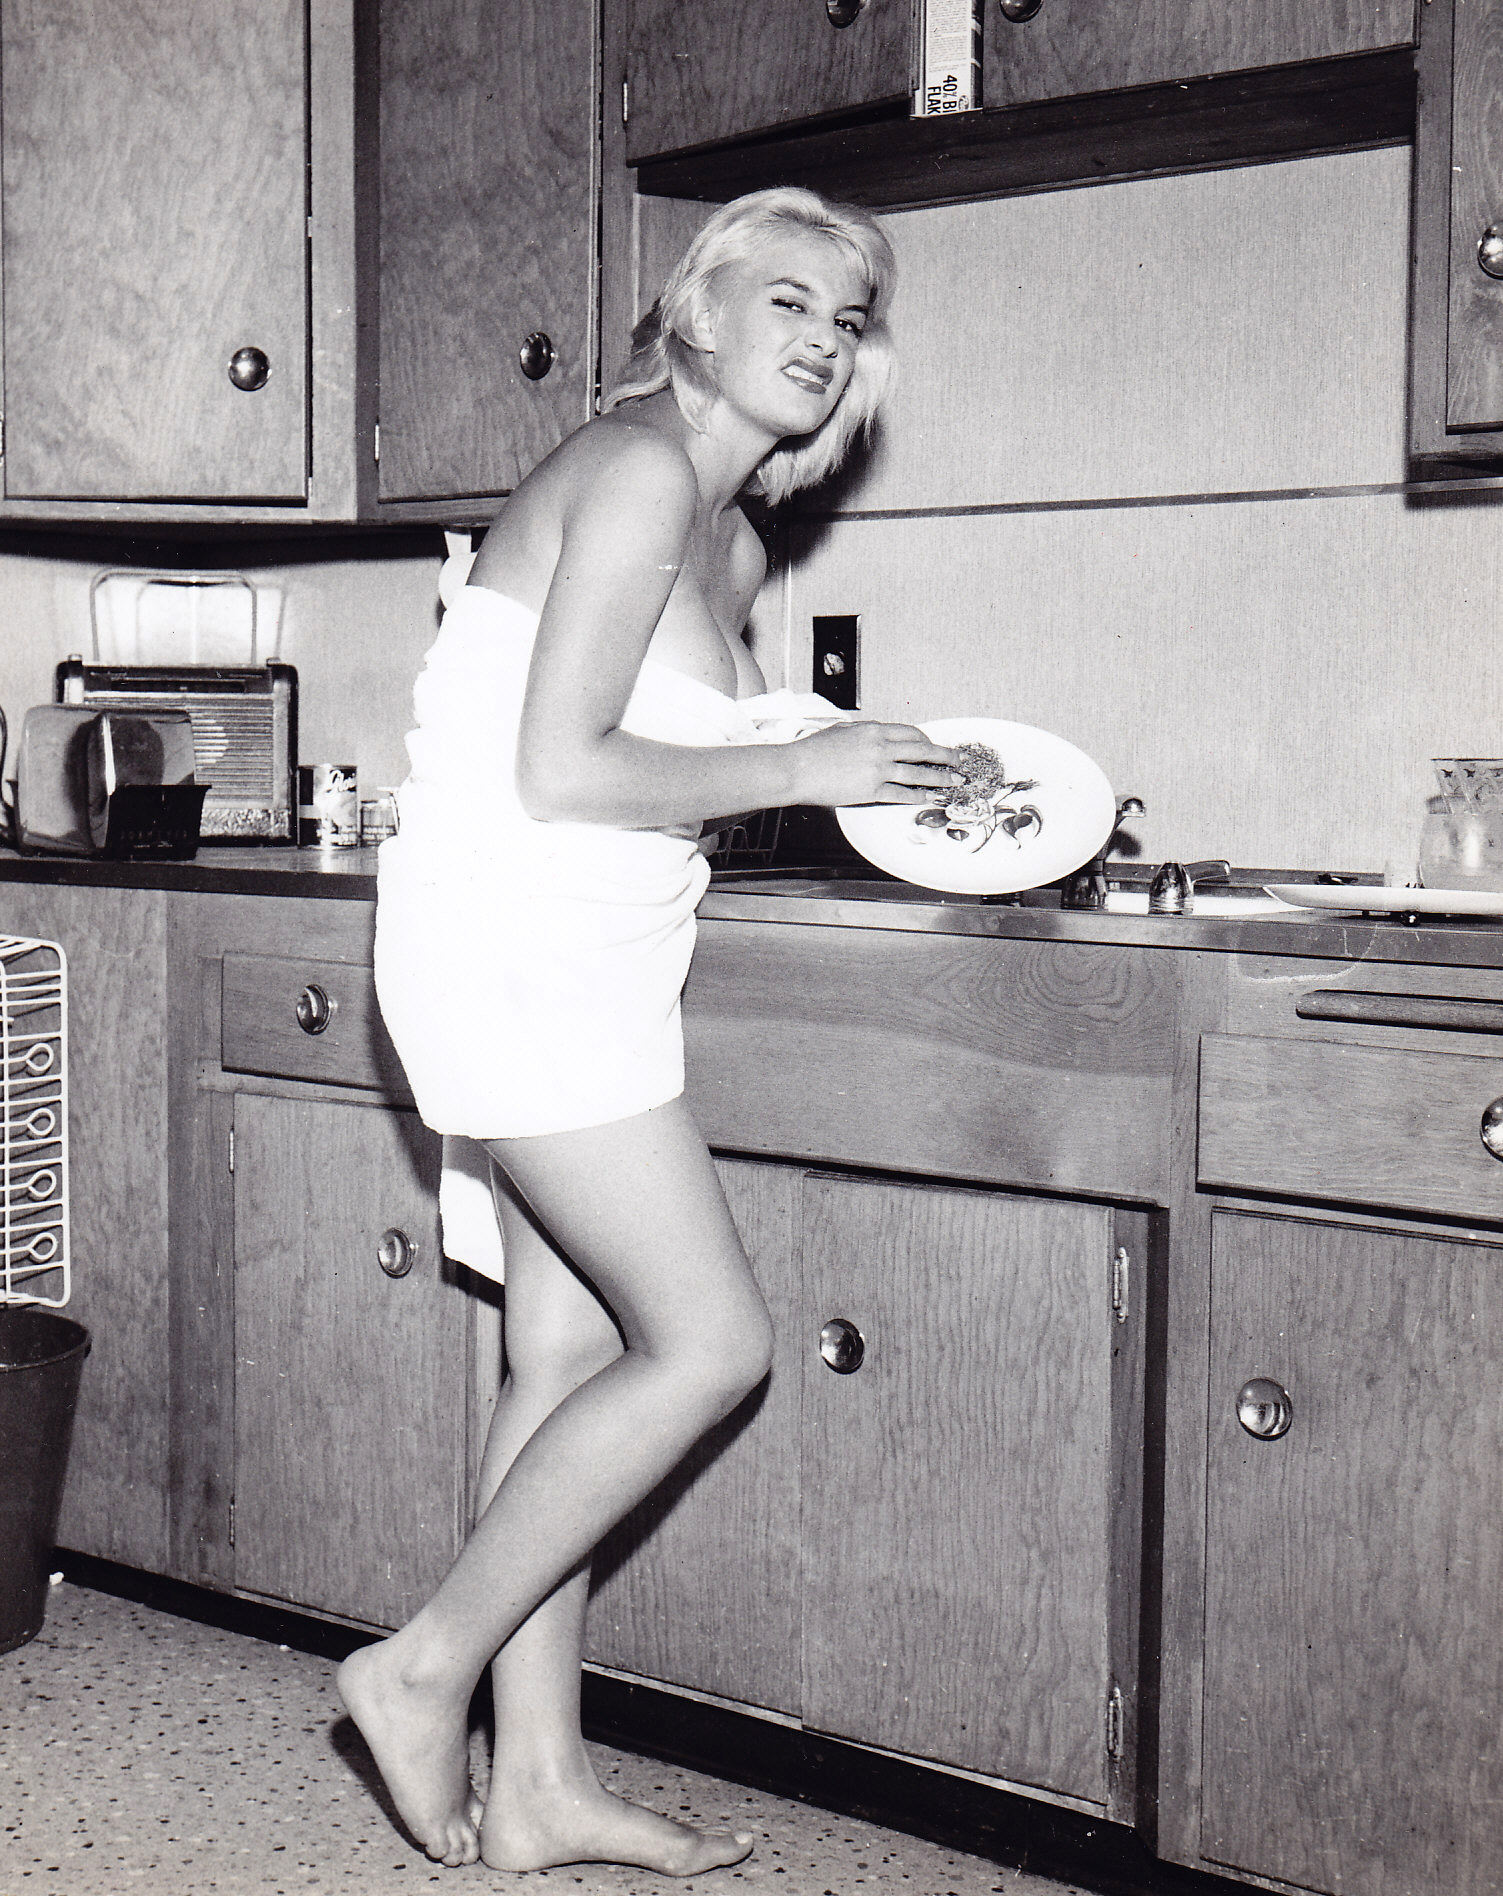 June Wilkinson doing the dishes in the kitchen, 1957